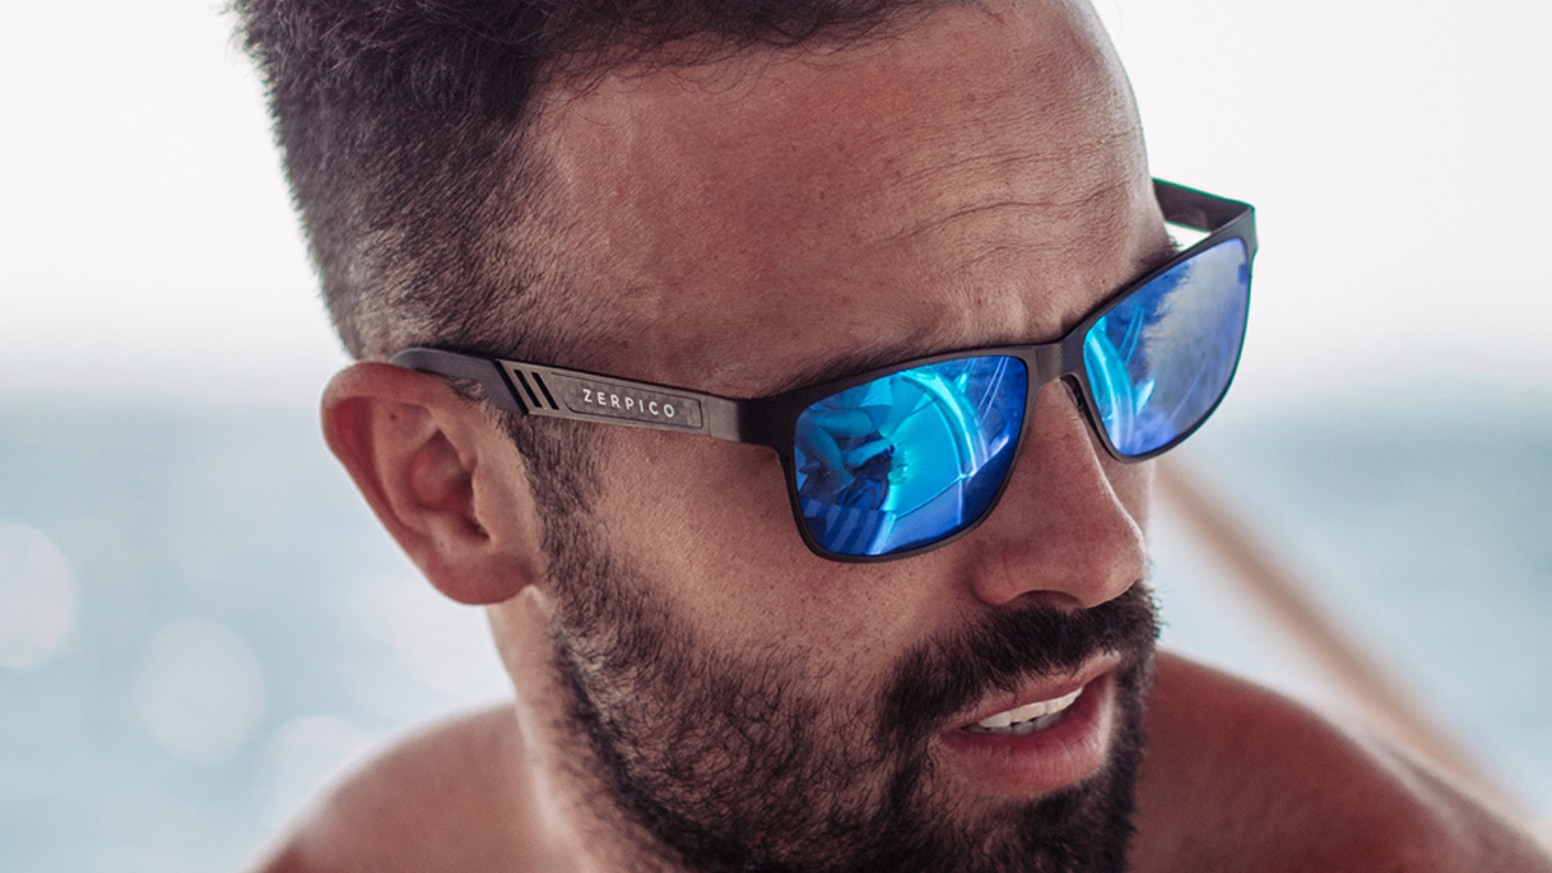 Wayfarer sunglasses made of high quality titanium. Simply switch between 2 different frames and 3 colors of polarized lenses.